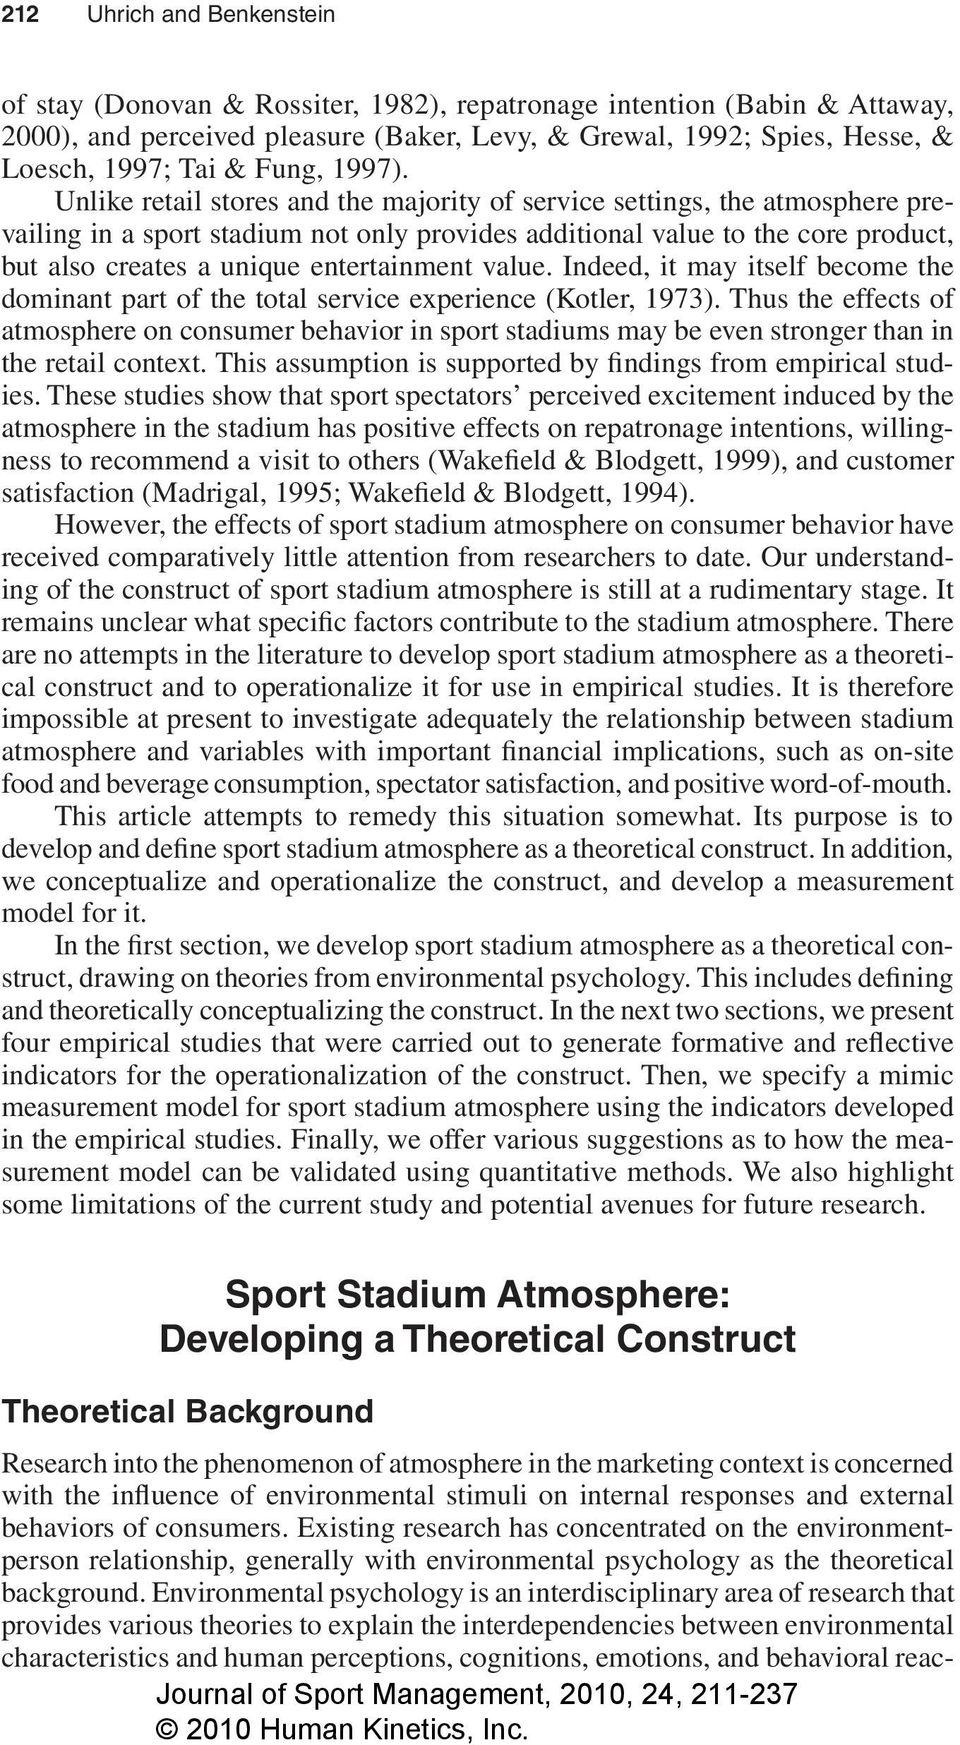 Unlike retail stores and the majority of service settings, the atmosphere prevailing in a sport stadium not only provides additional value to the core product, but also creates a unique entertainment